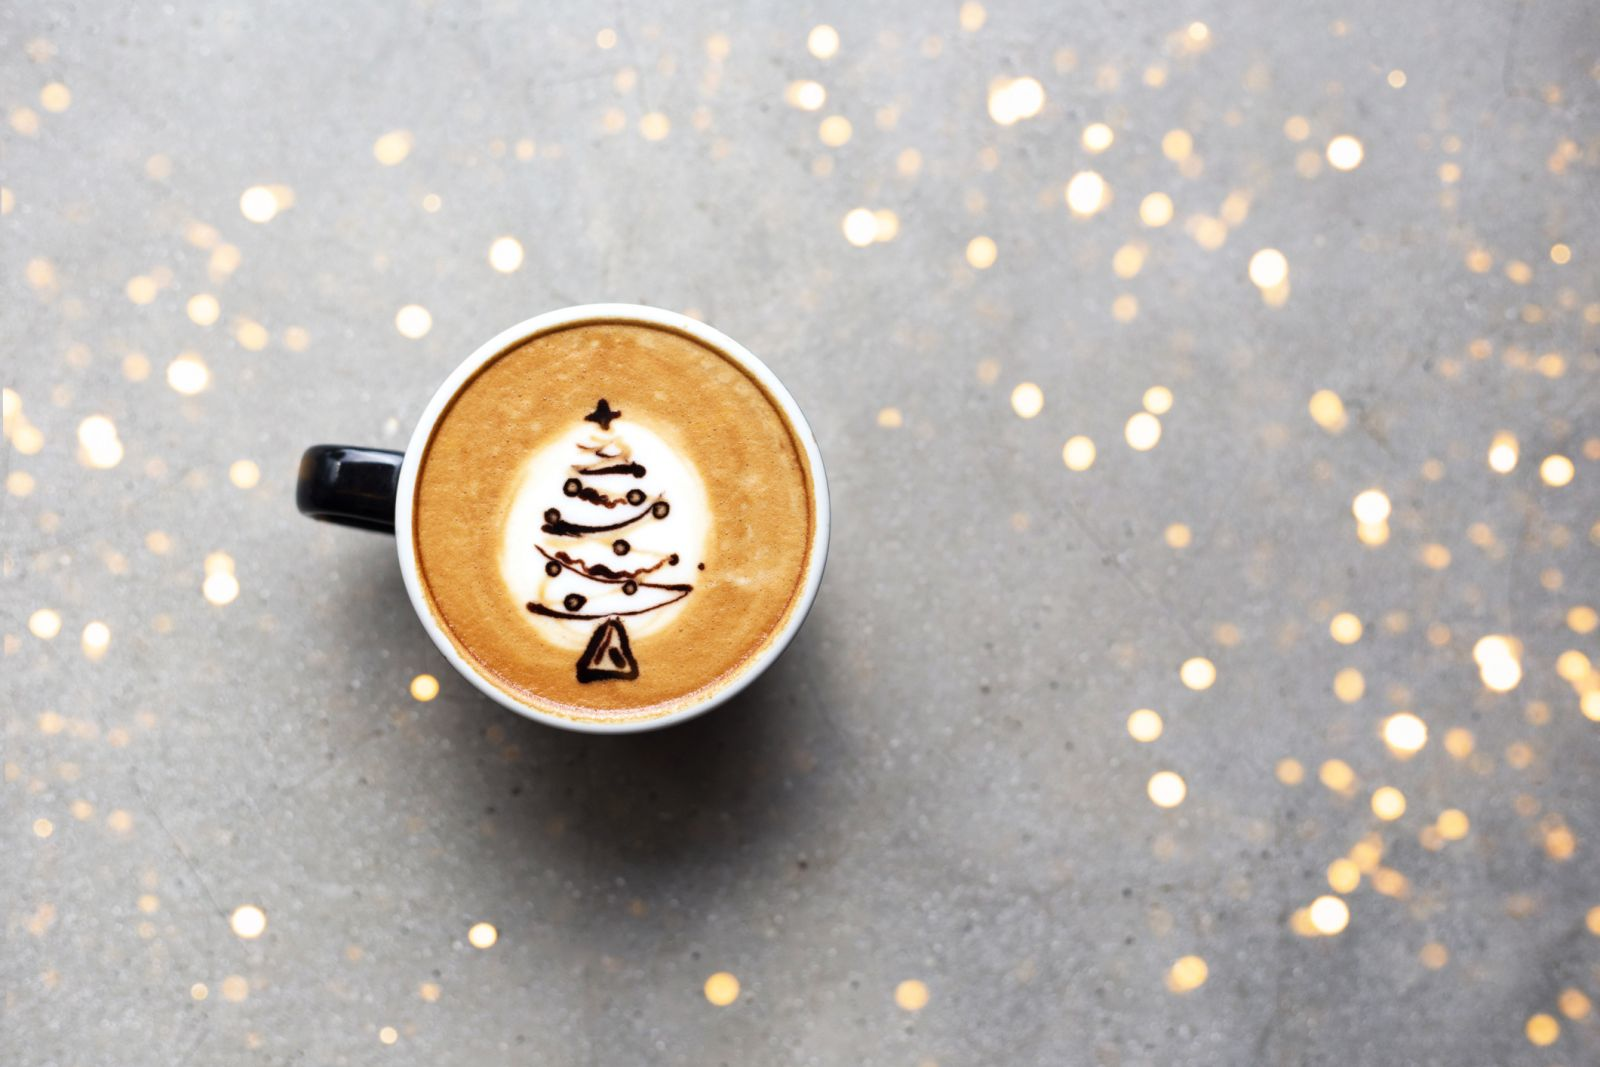 Image of a Holiday themed latte with a Christmas Tree Design